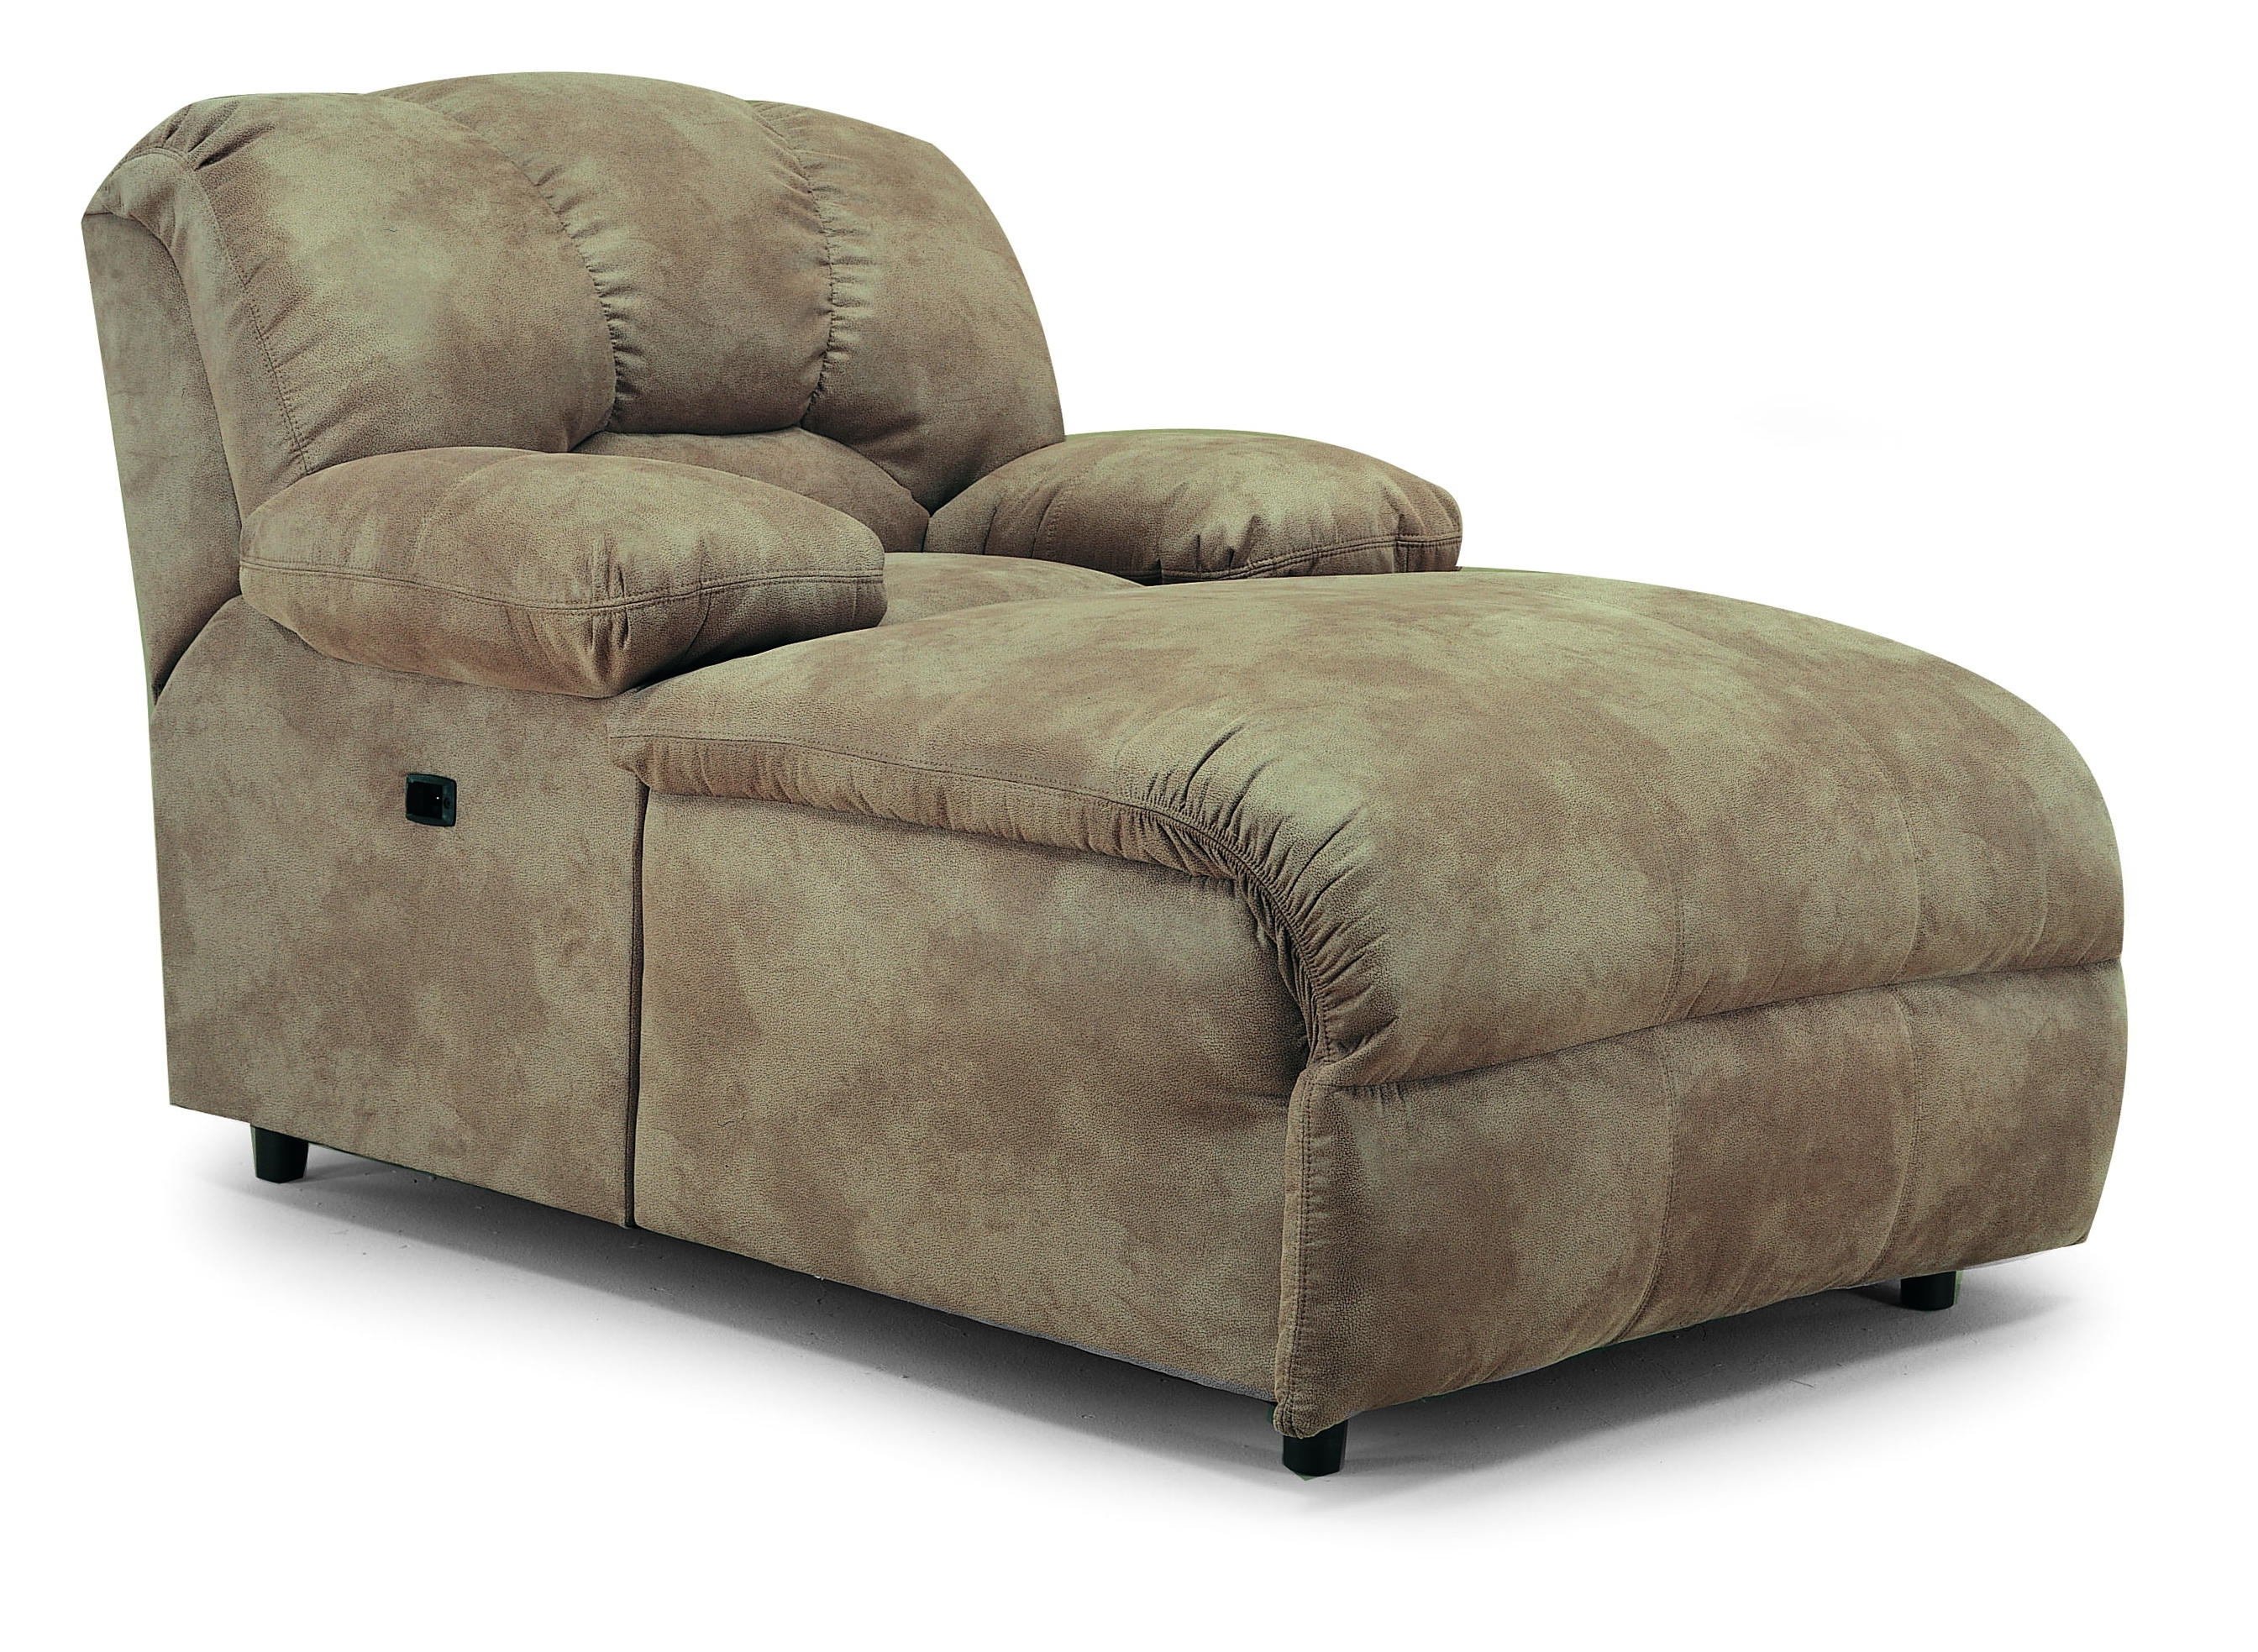 Fashionable Chaise Lounge Recliners With Regard To Recliner Chaise Lounge Chair (View 1 of 15)